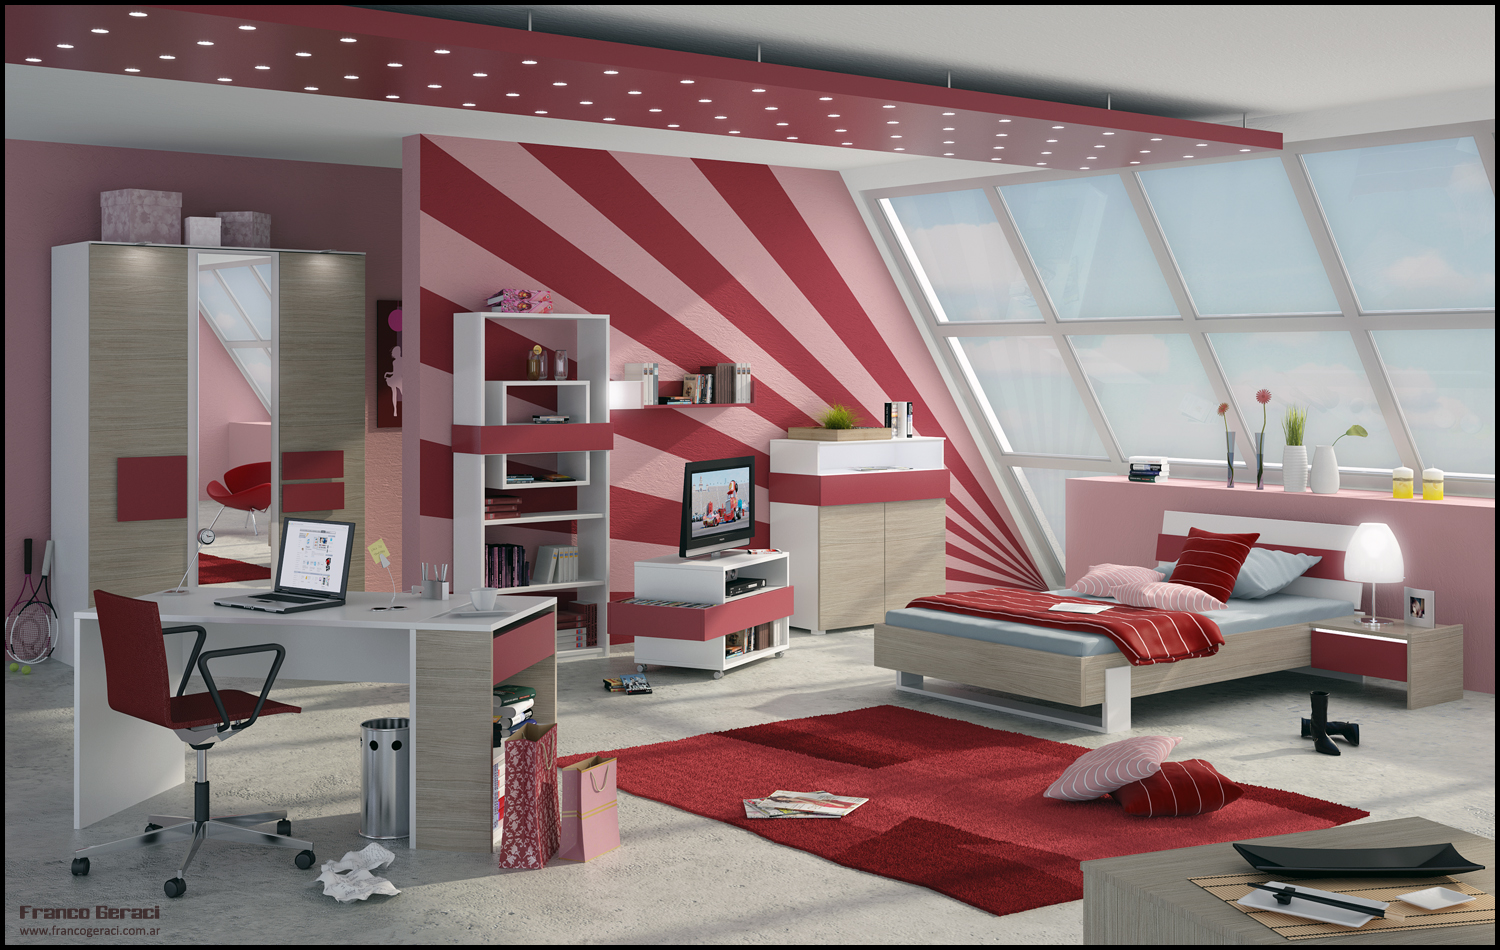 3droom by feg - Teen Room Design Ideas